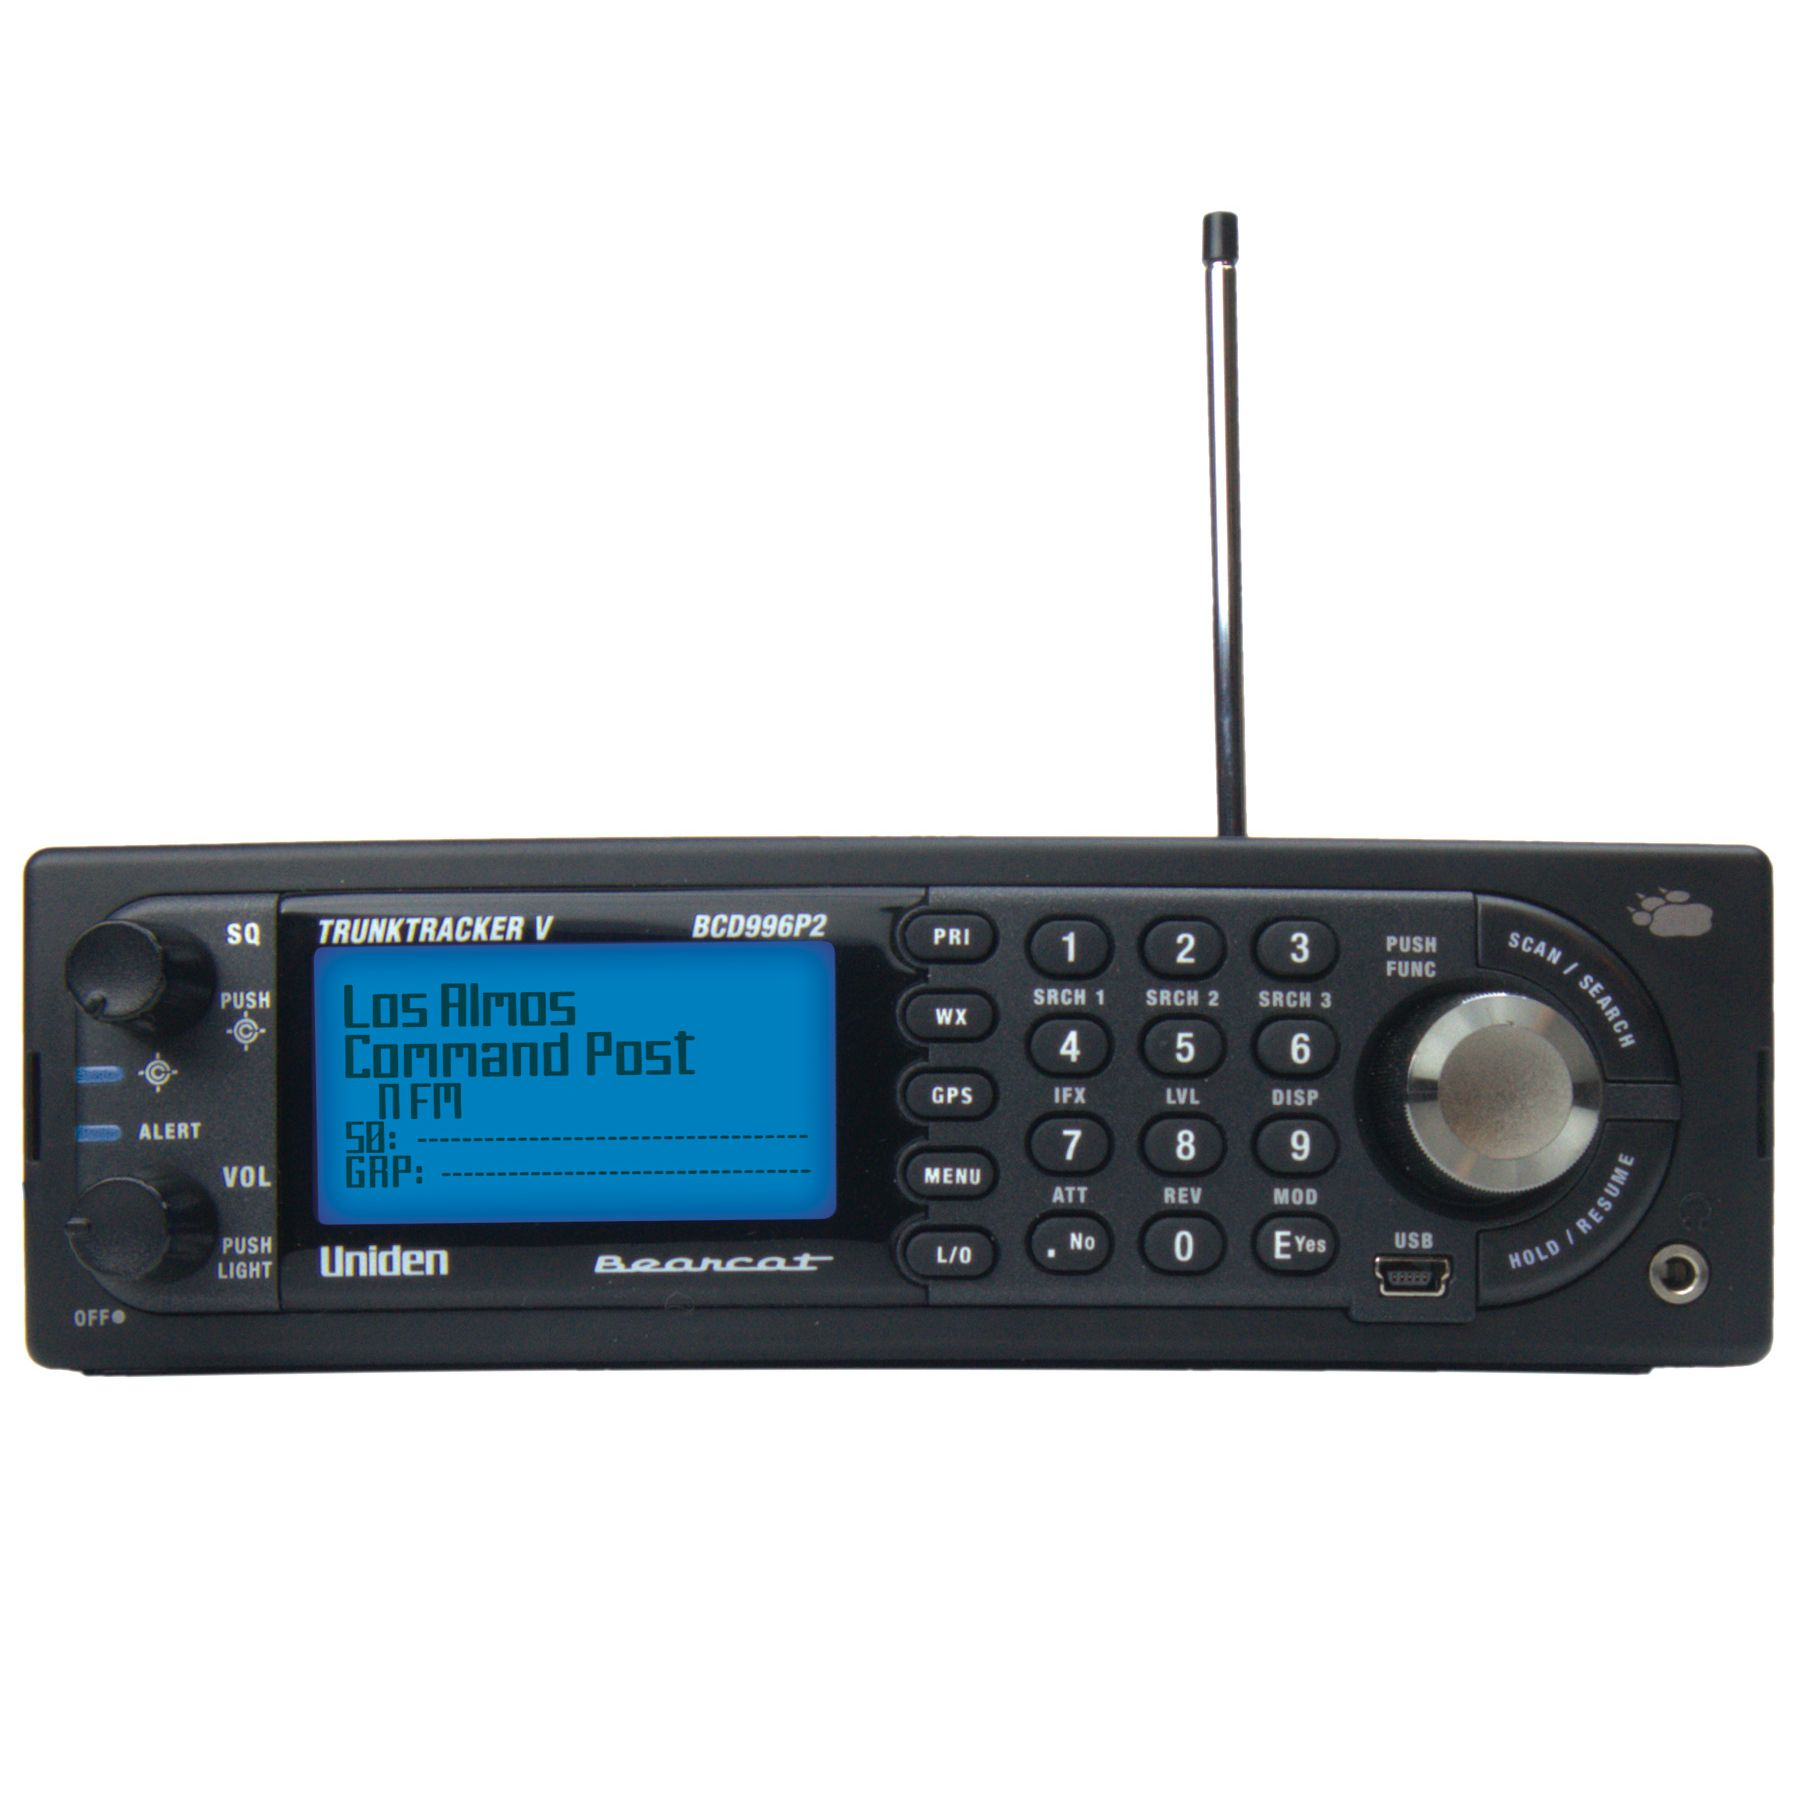 Bcd996p2 Base Scanner moreover 1 together with 649 together with Samsung E1500 Duos Price 33008 likewise Index. on radio frequency list